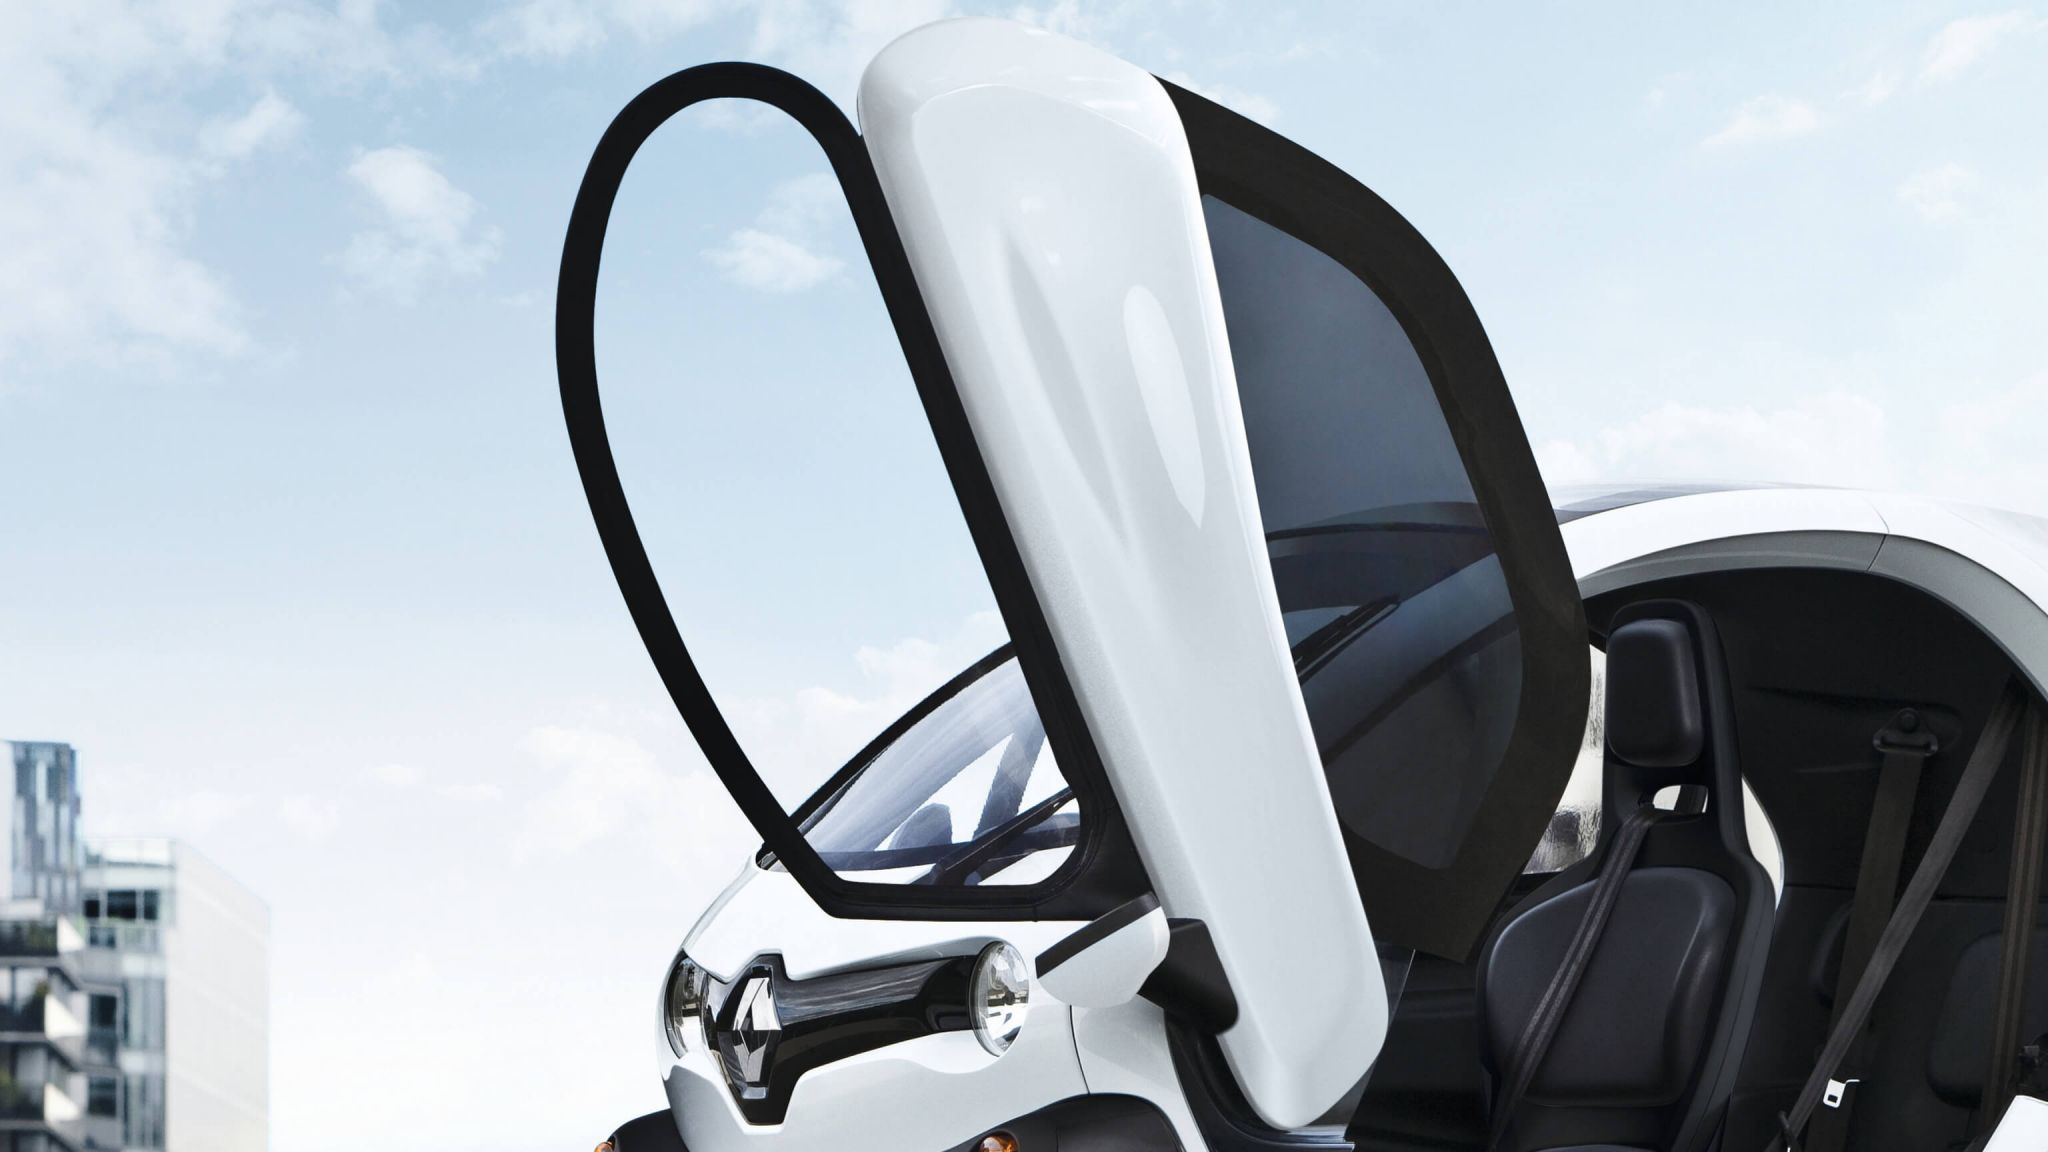 de renault twizy maak kennis met deze renault bij bochane. Black Bedroom Furniture Sets. Home Design Ideas